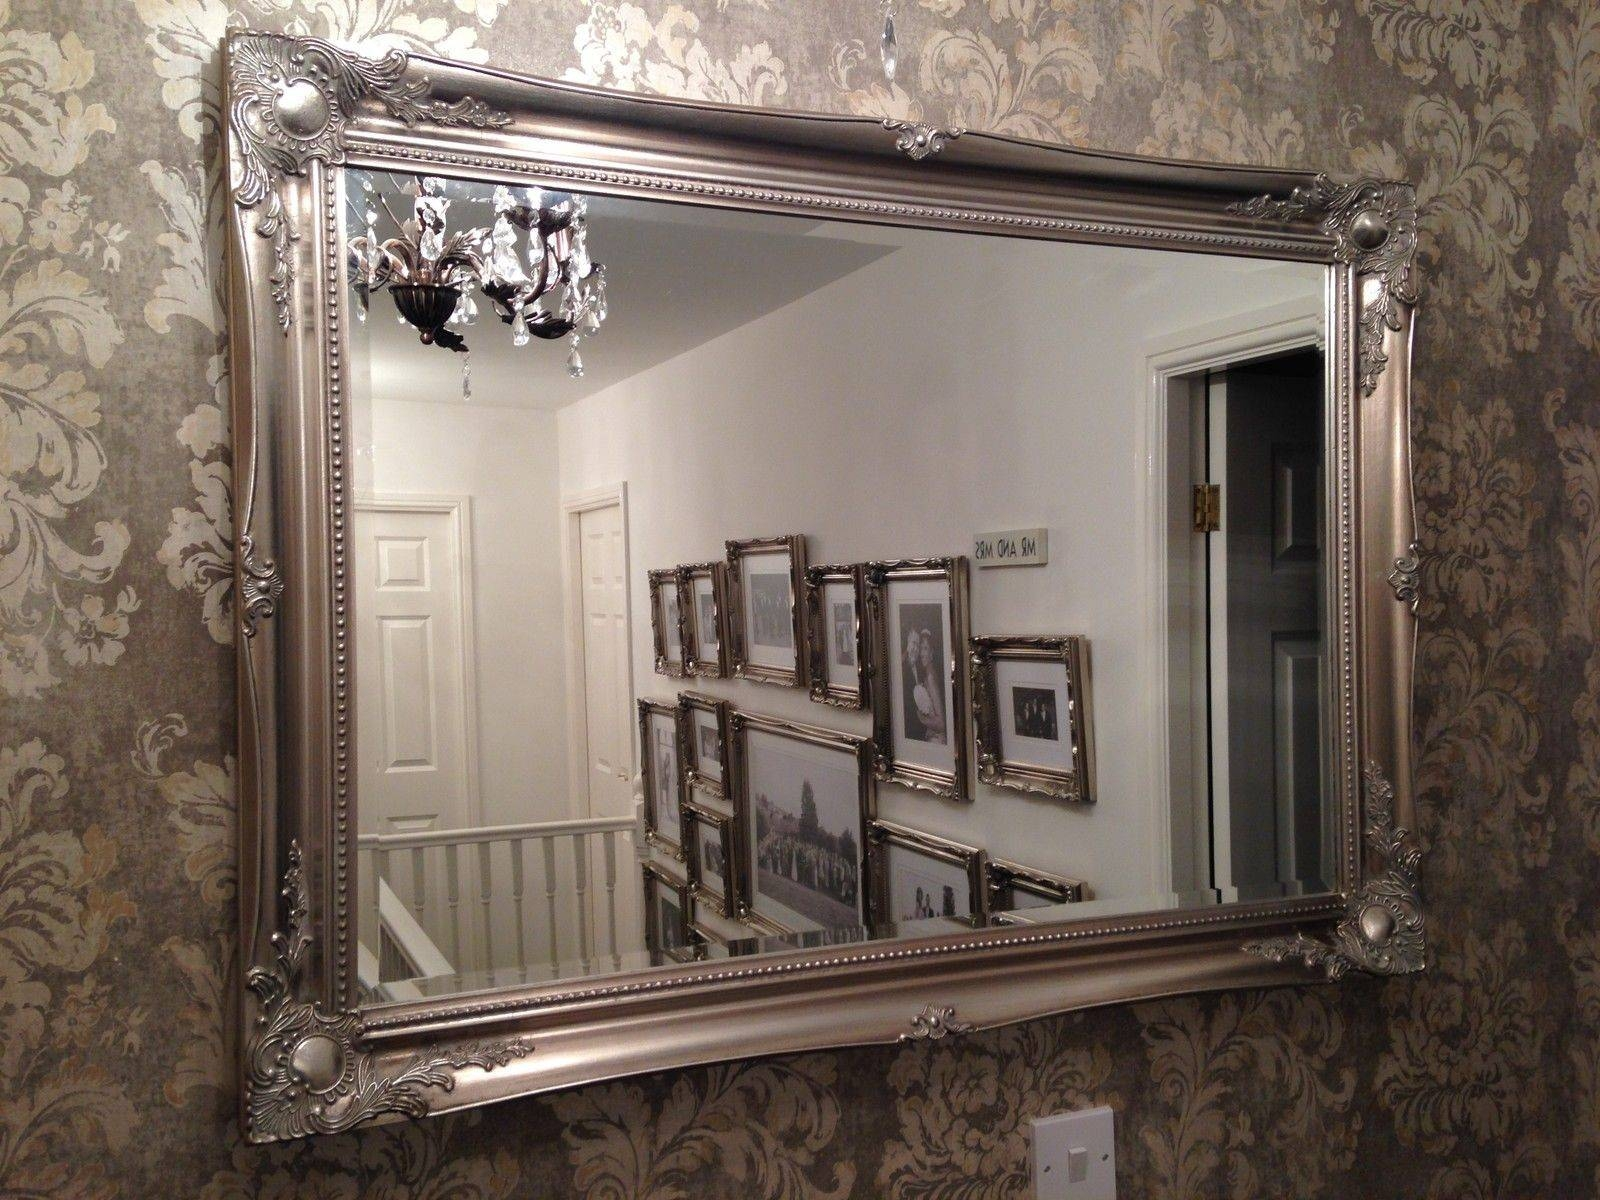 Old Fashioned Wall Mirrors Antique Mirror Wall Covering Vintage with regard to Old Fashioned Wall Mirrors (Image 11 of 15)